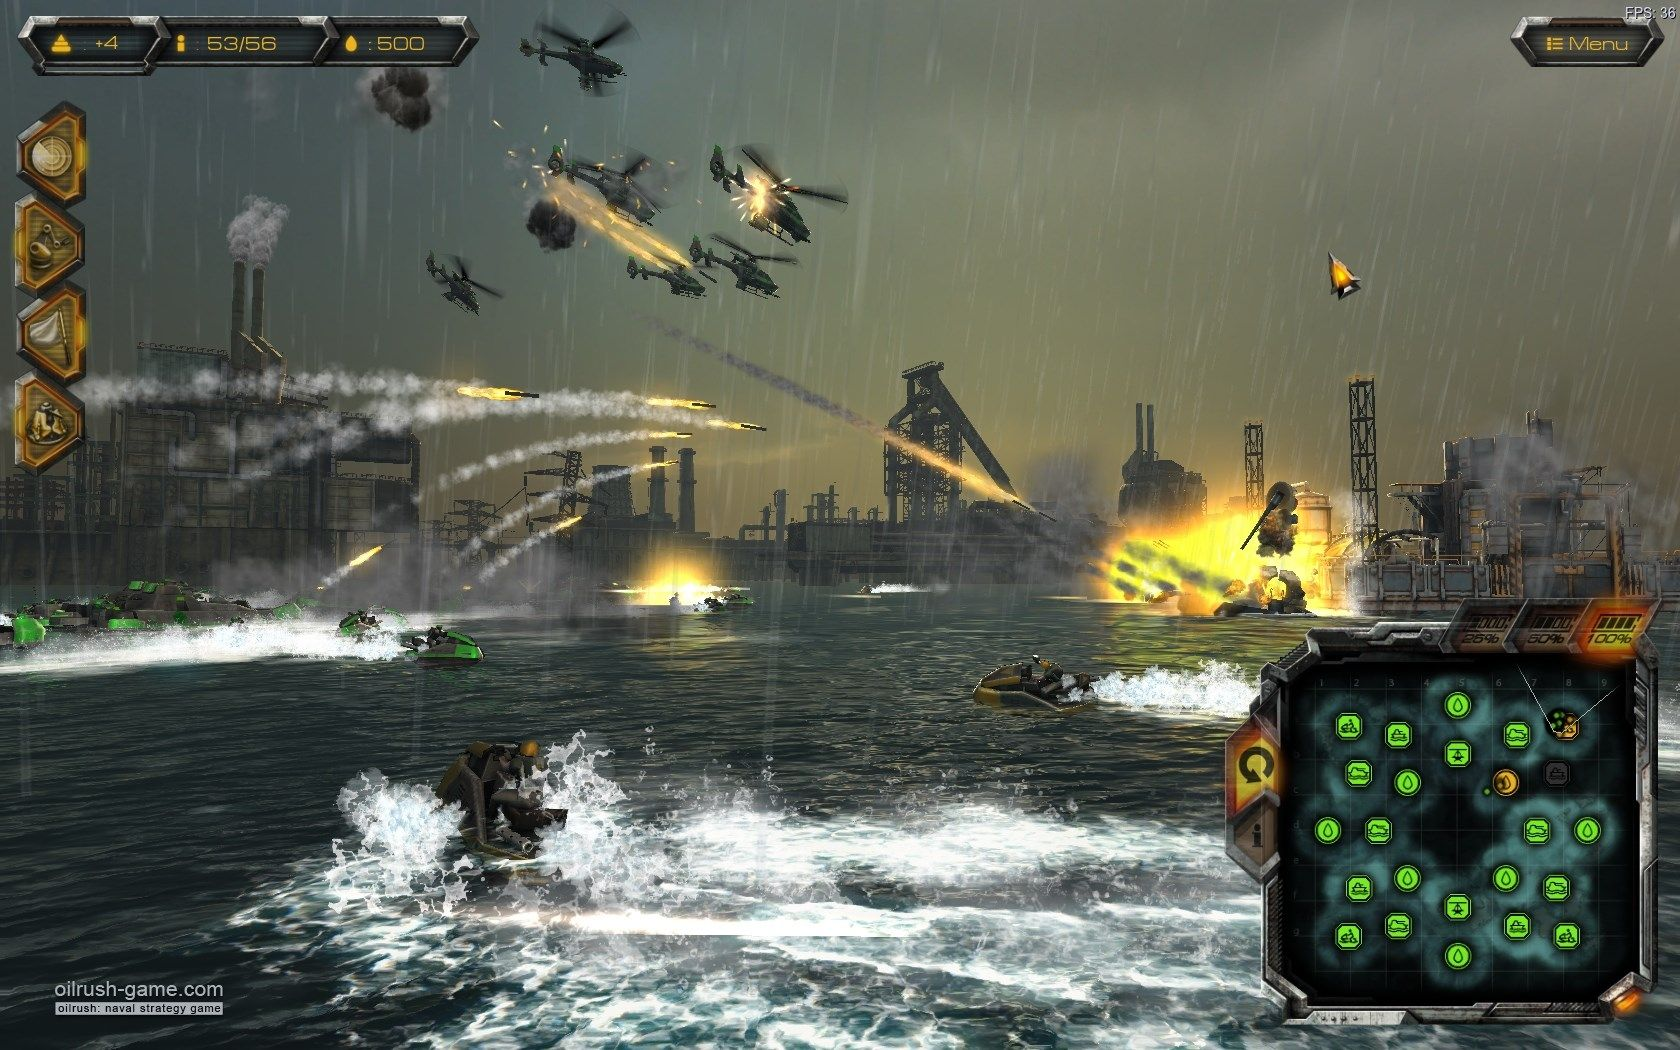 hd wallpaper oil rush Strategy games, Real time strategy